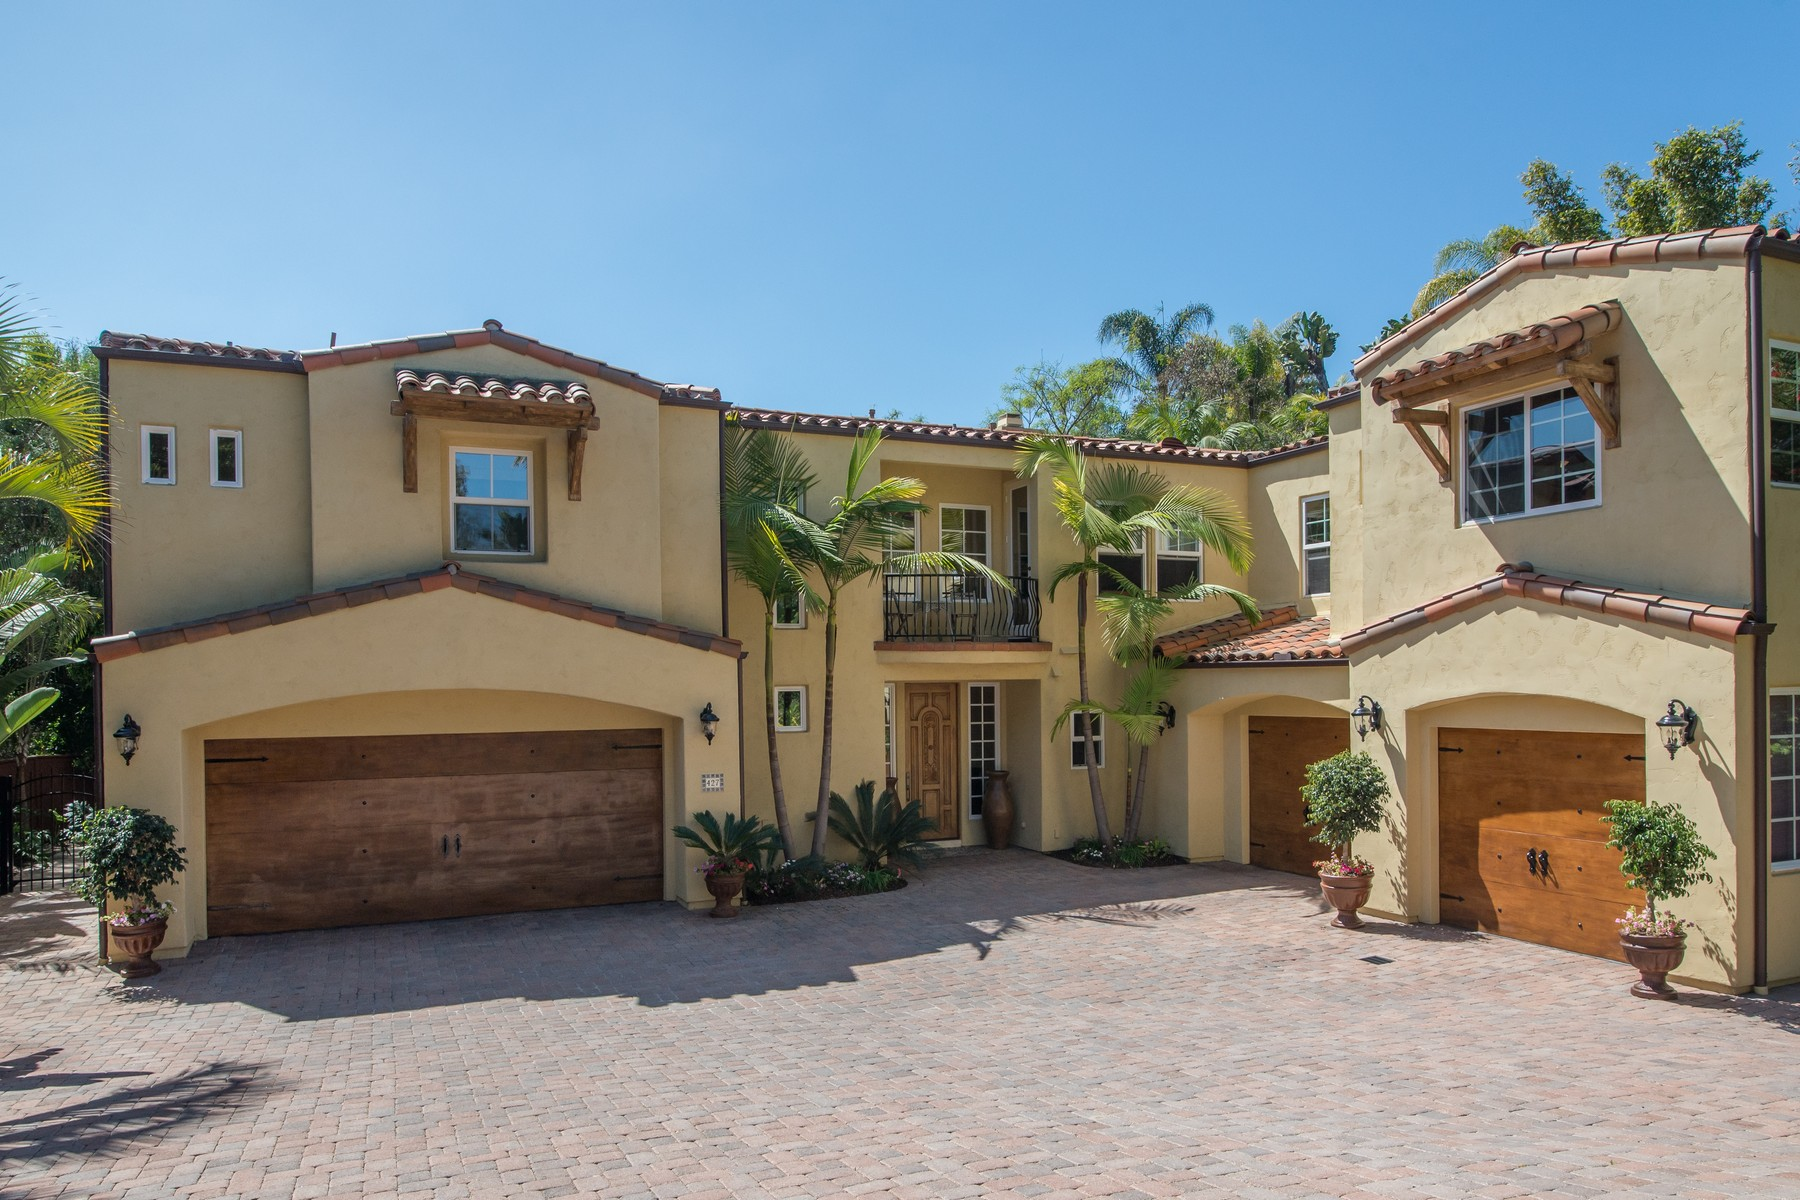 Additional photo for property listing at 427 El Sueno  Solana Beach, California 92075 United States